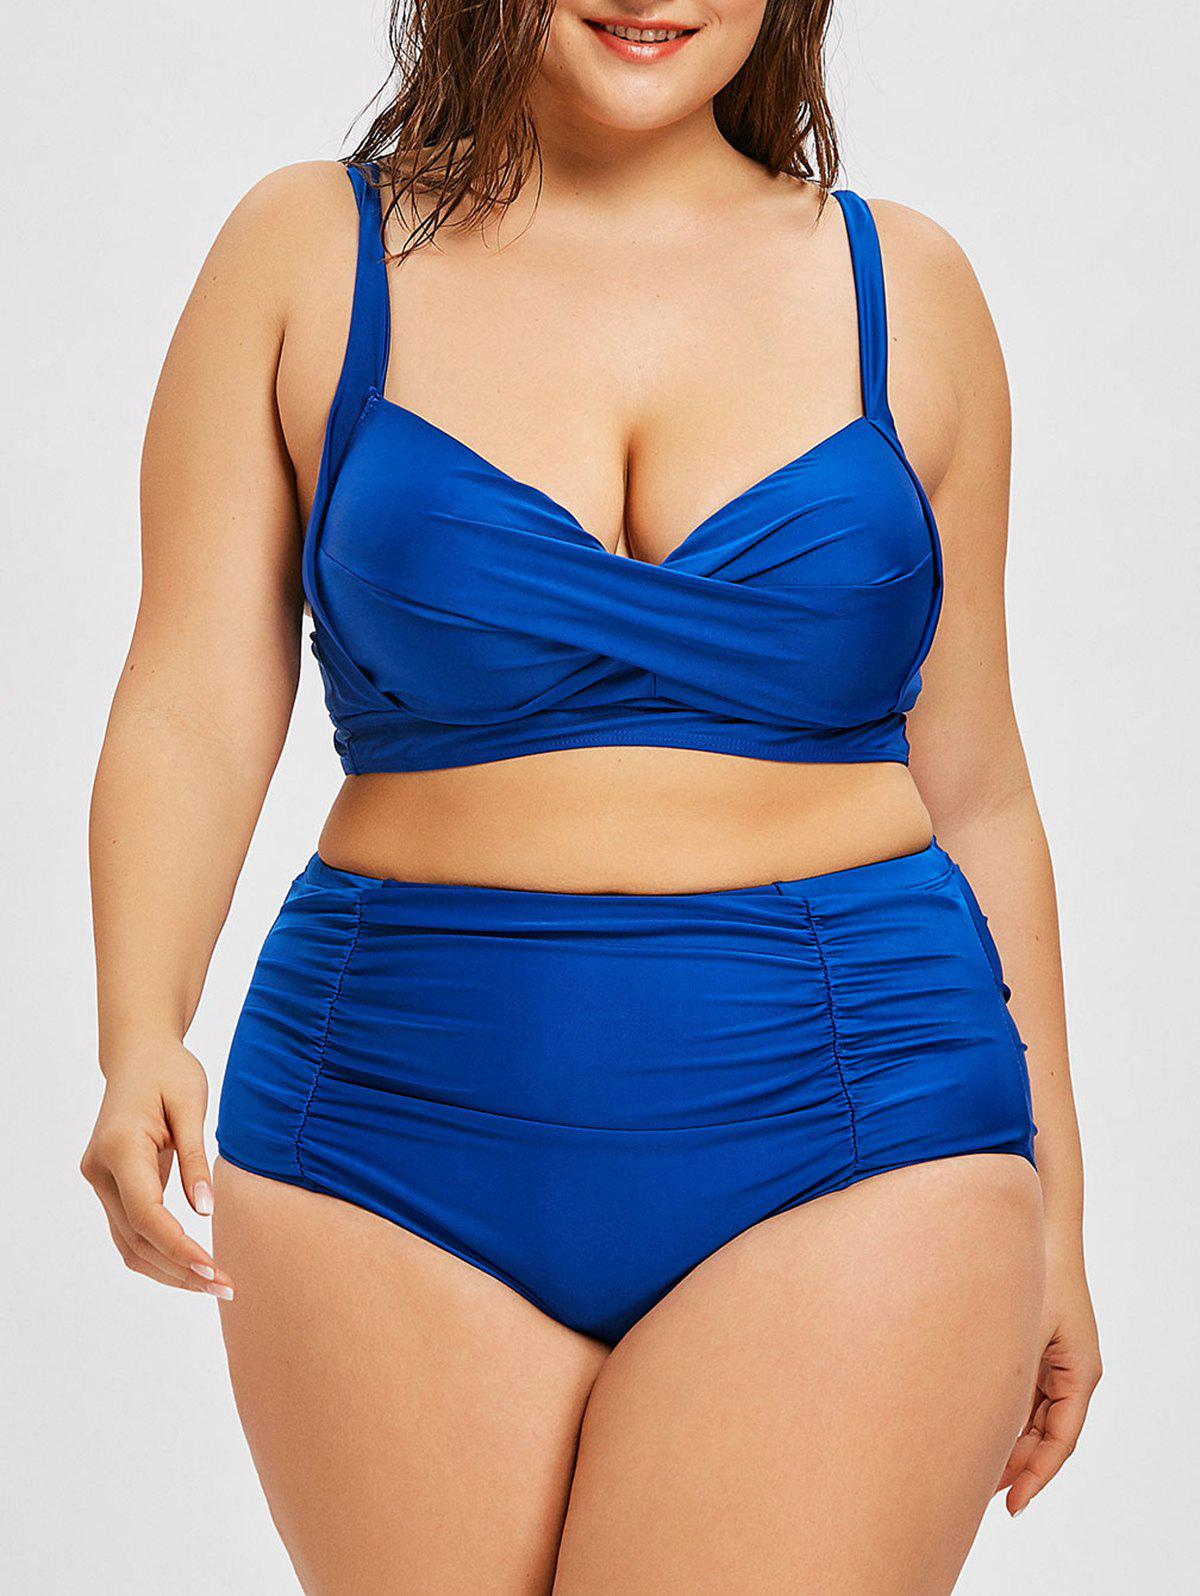 New Twist Plus Size High Rise Push Up Bikini